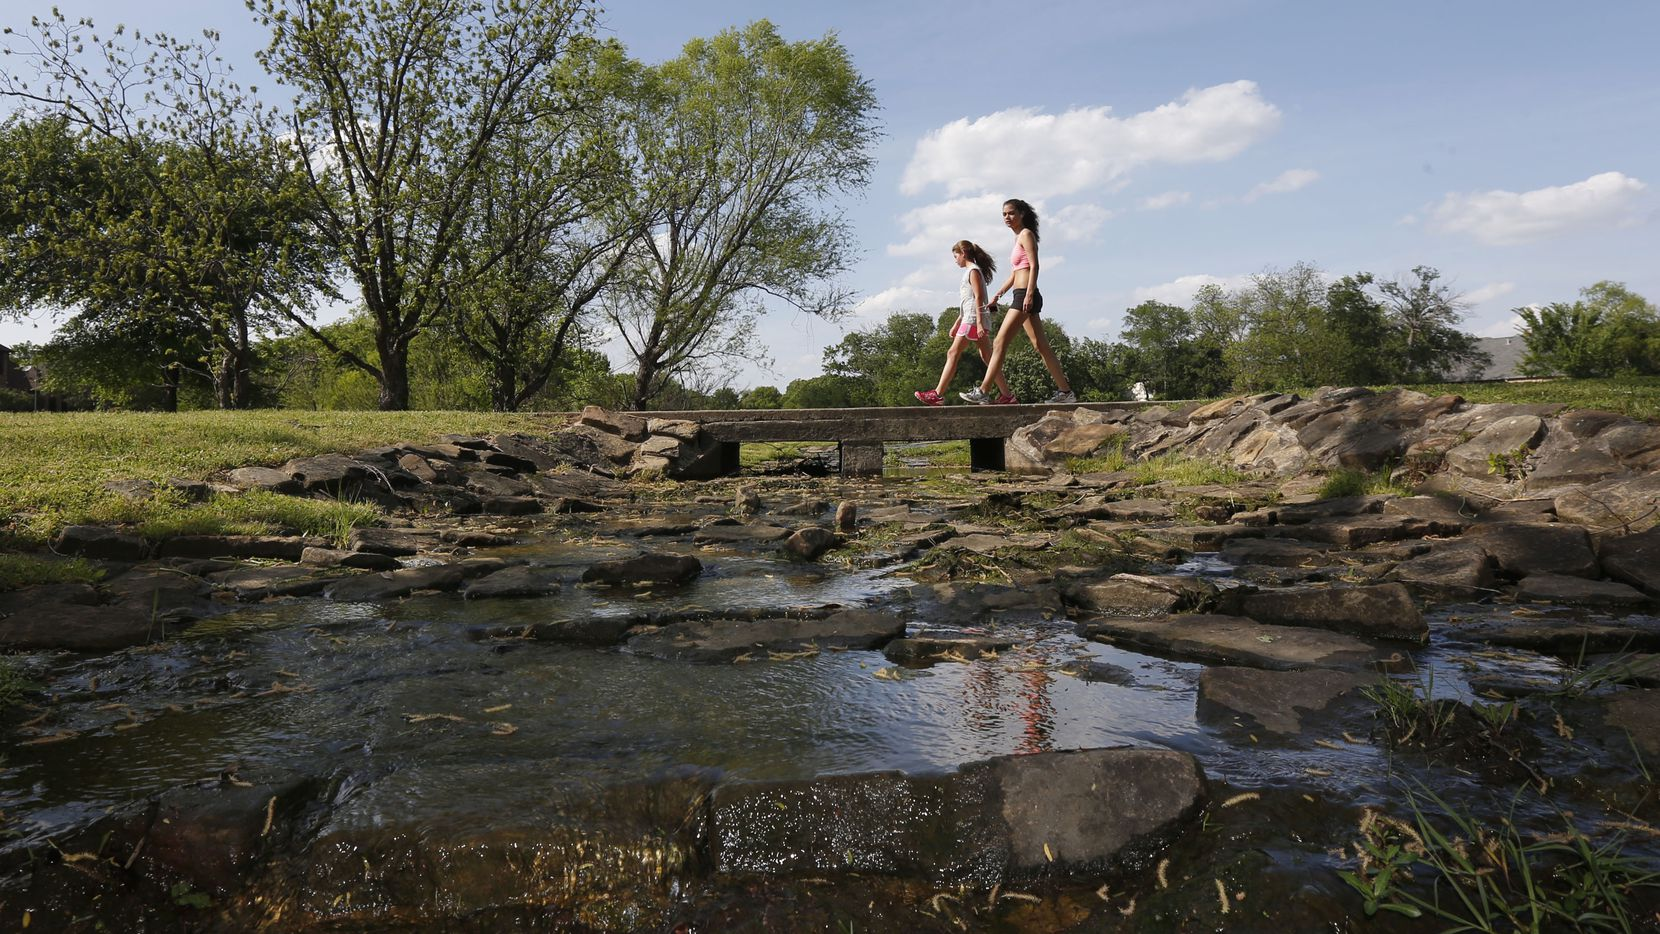 Two unidentified girls walk over a creek at the Colleyville Nature Center on April 23, 2014.  (Michael Ainsworth/The Dallas Morning News)